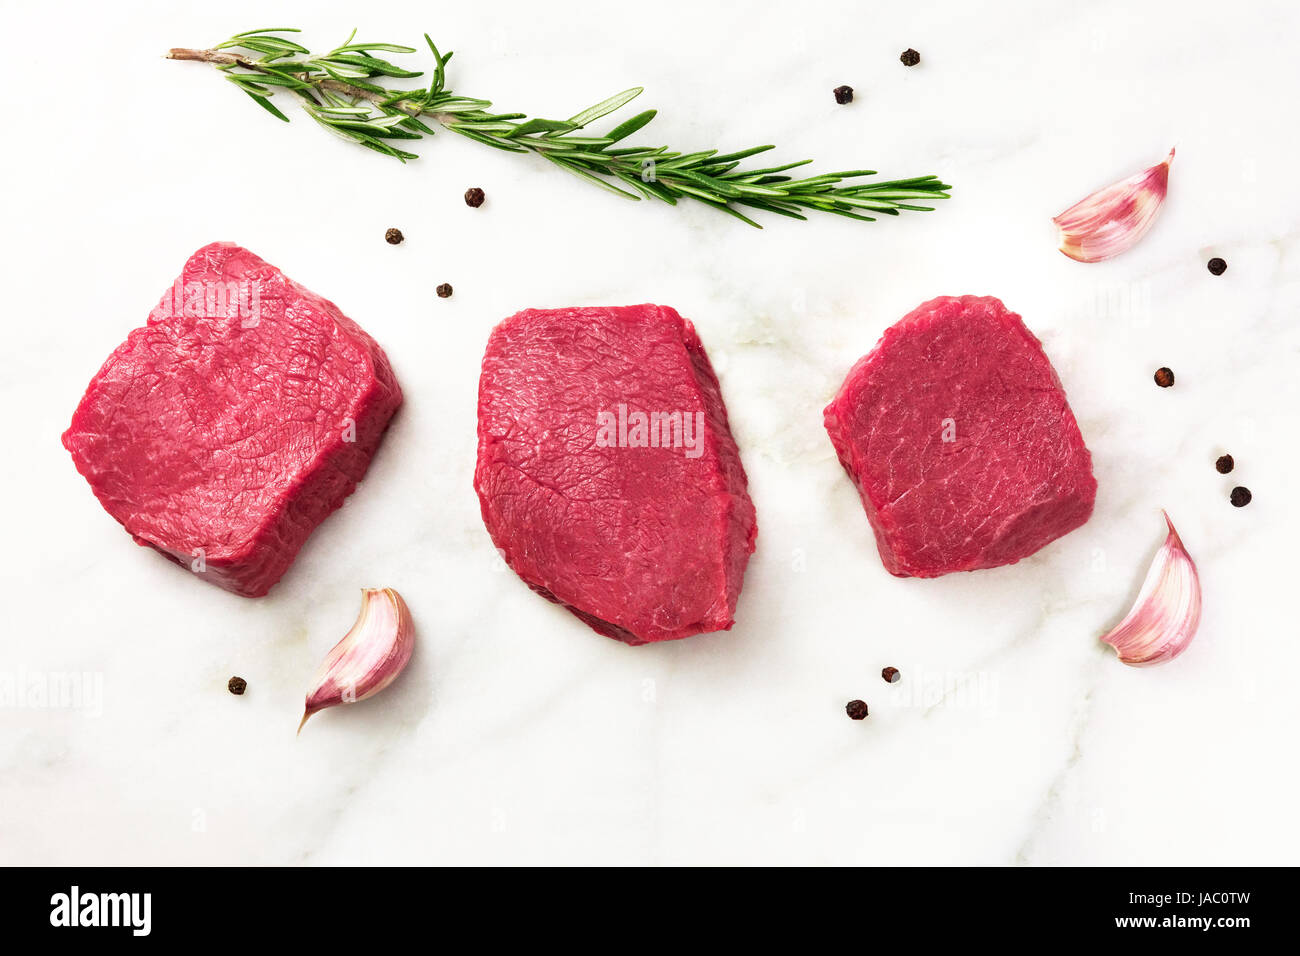 Three slices of raw meat with seasoning and copyspace - Stock Image